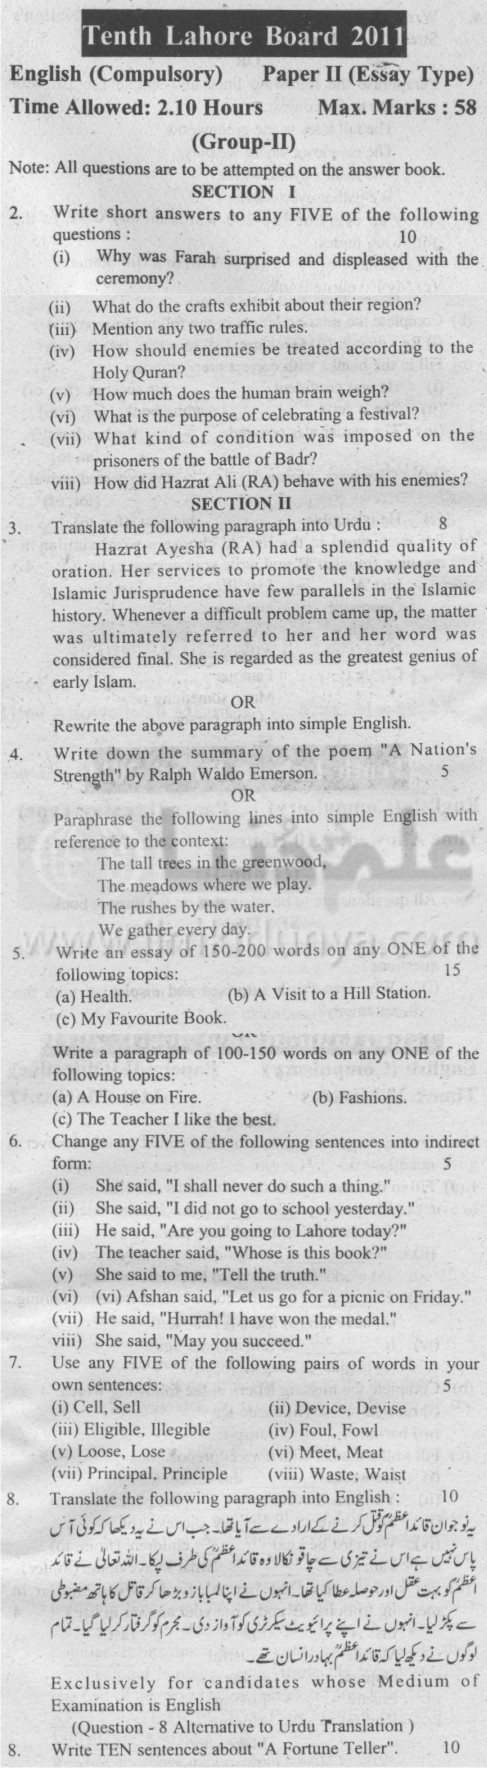 Class Essay  Oklmindsproutco Th Class English Compulsory Essay Type Group Ii Lahore Board